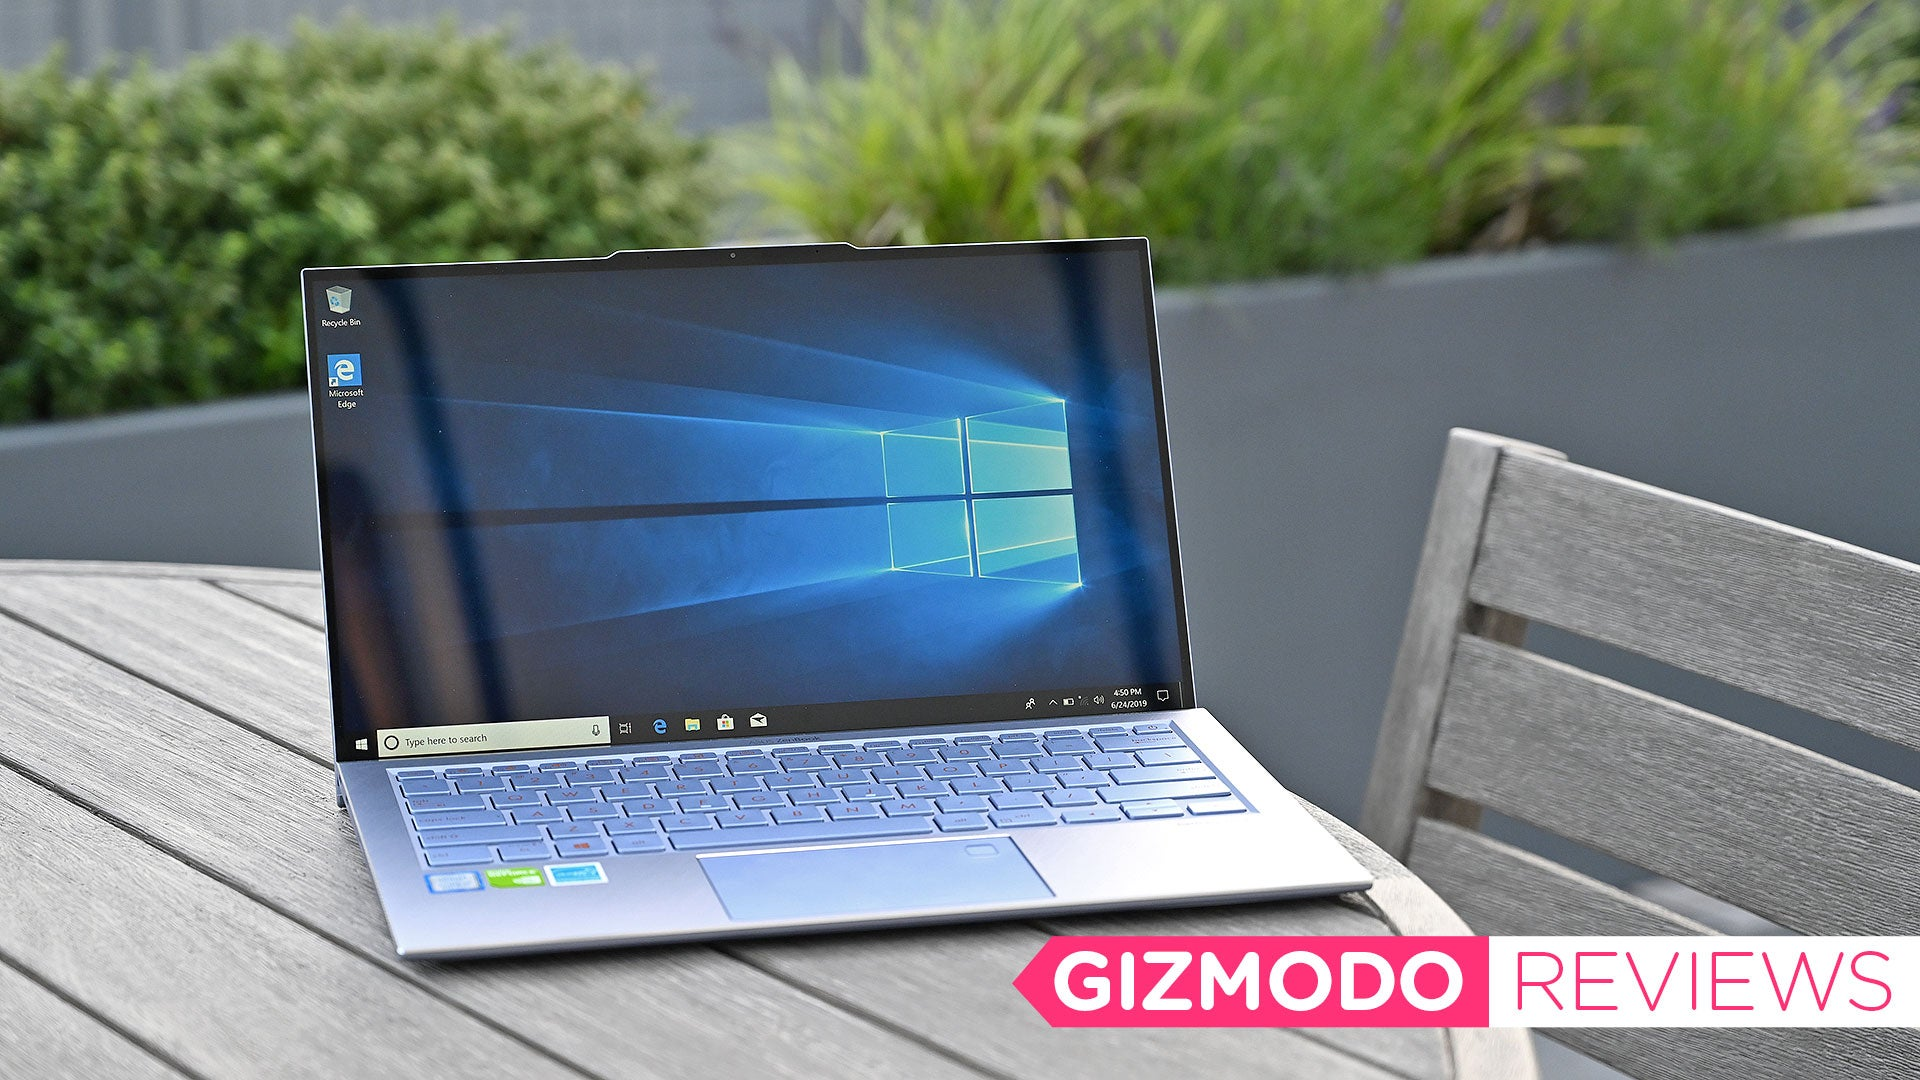 Asus Zenbook S13 Review: A Notch, A Bump, A Clever Little Laptop